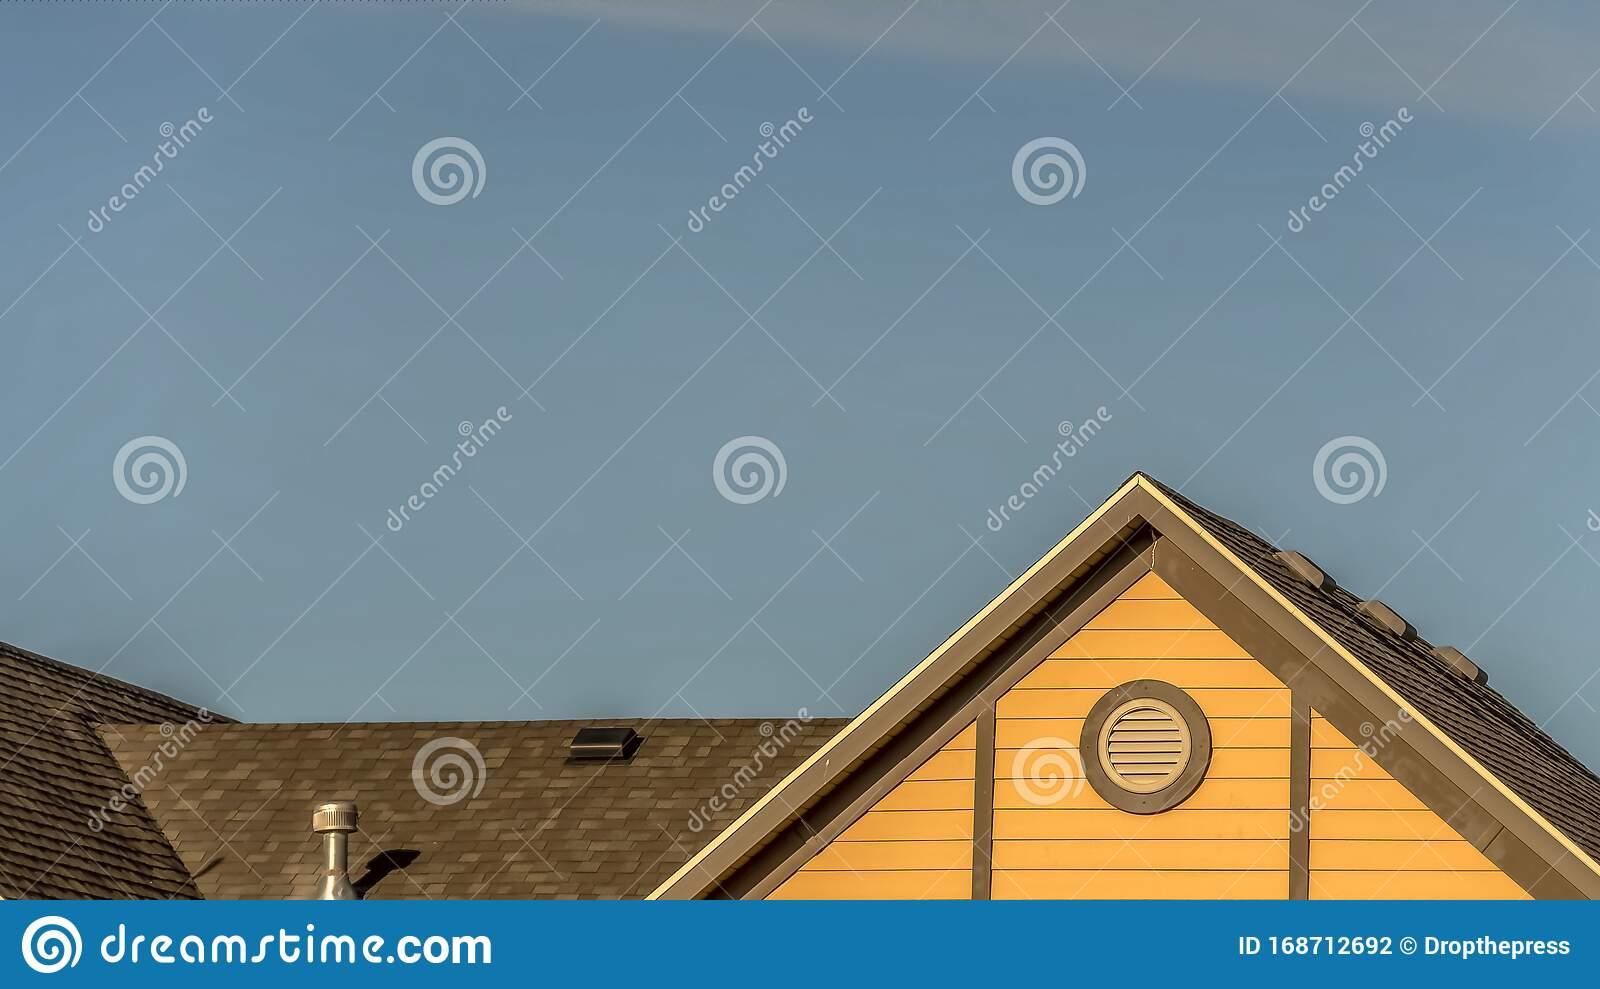 pano house exterior roof shingles round gable window against blue sky roofing construction chimney vent viewed sunny 168712692